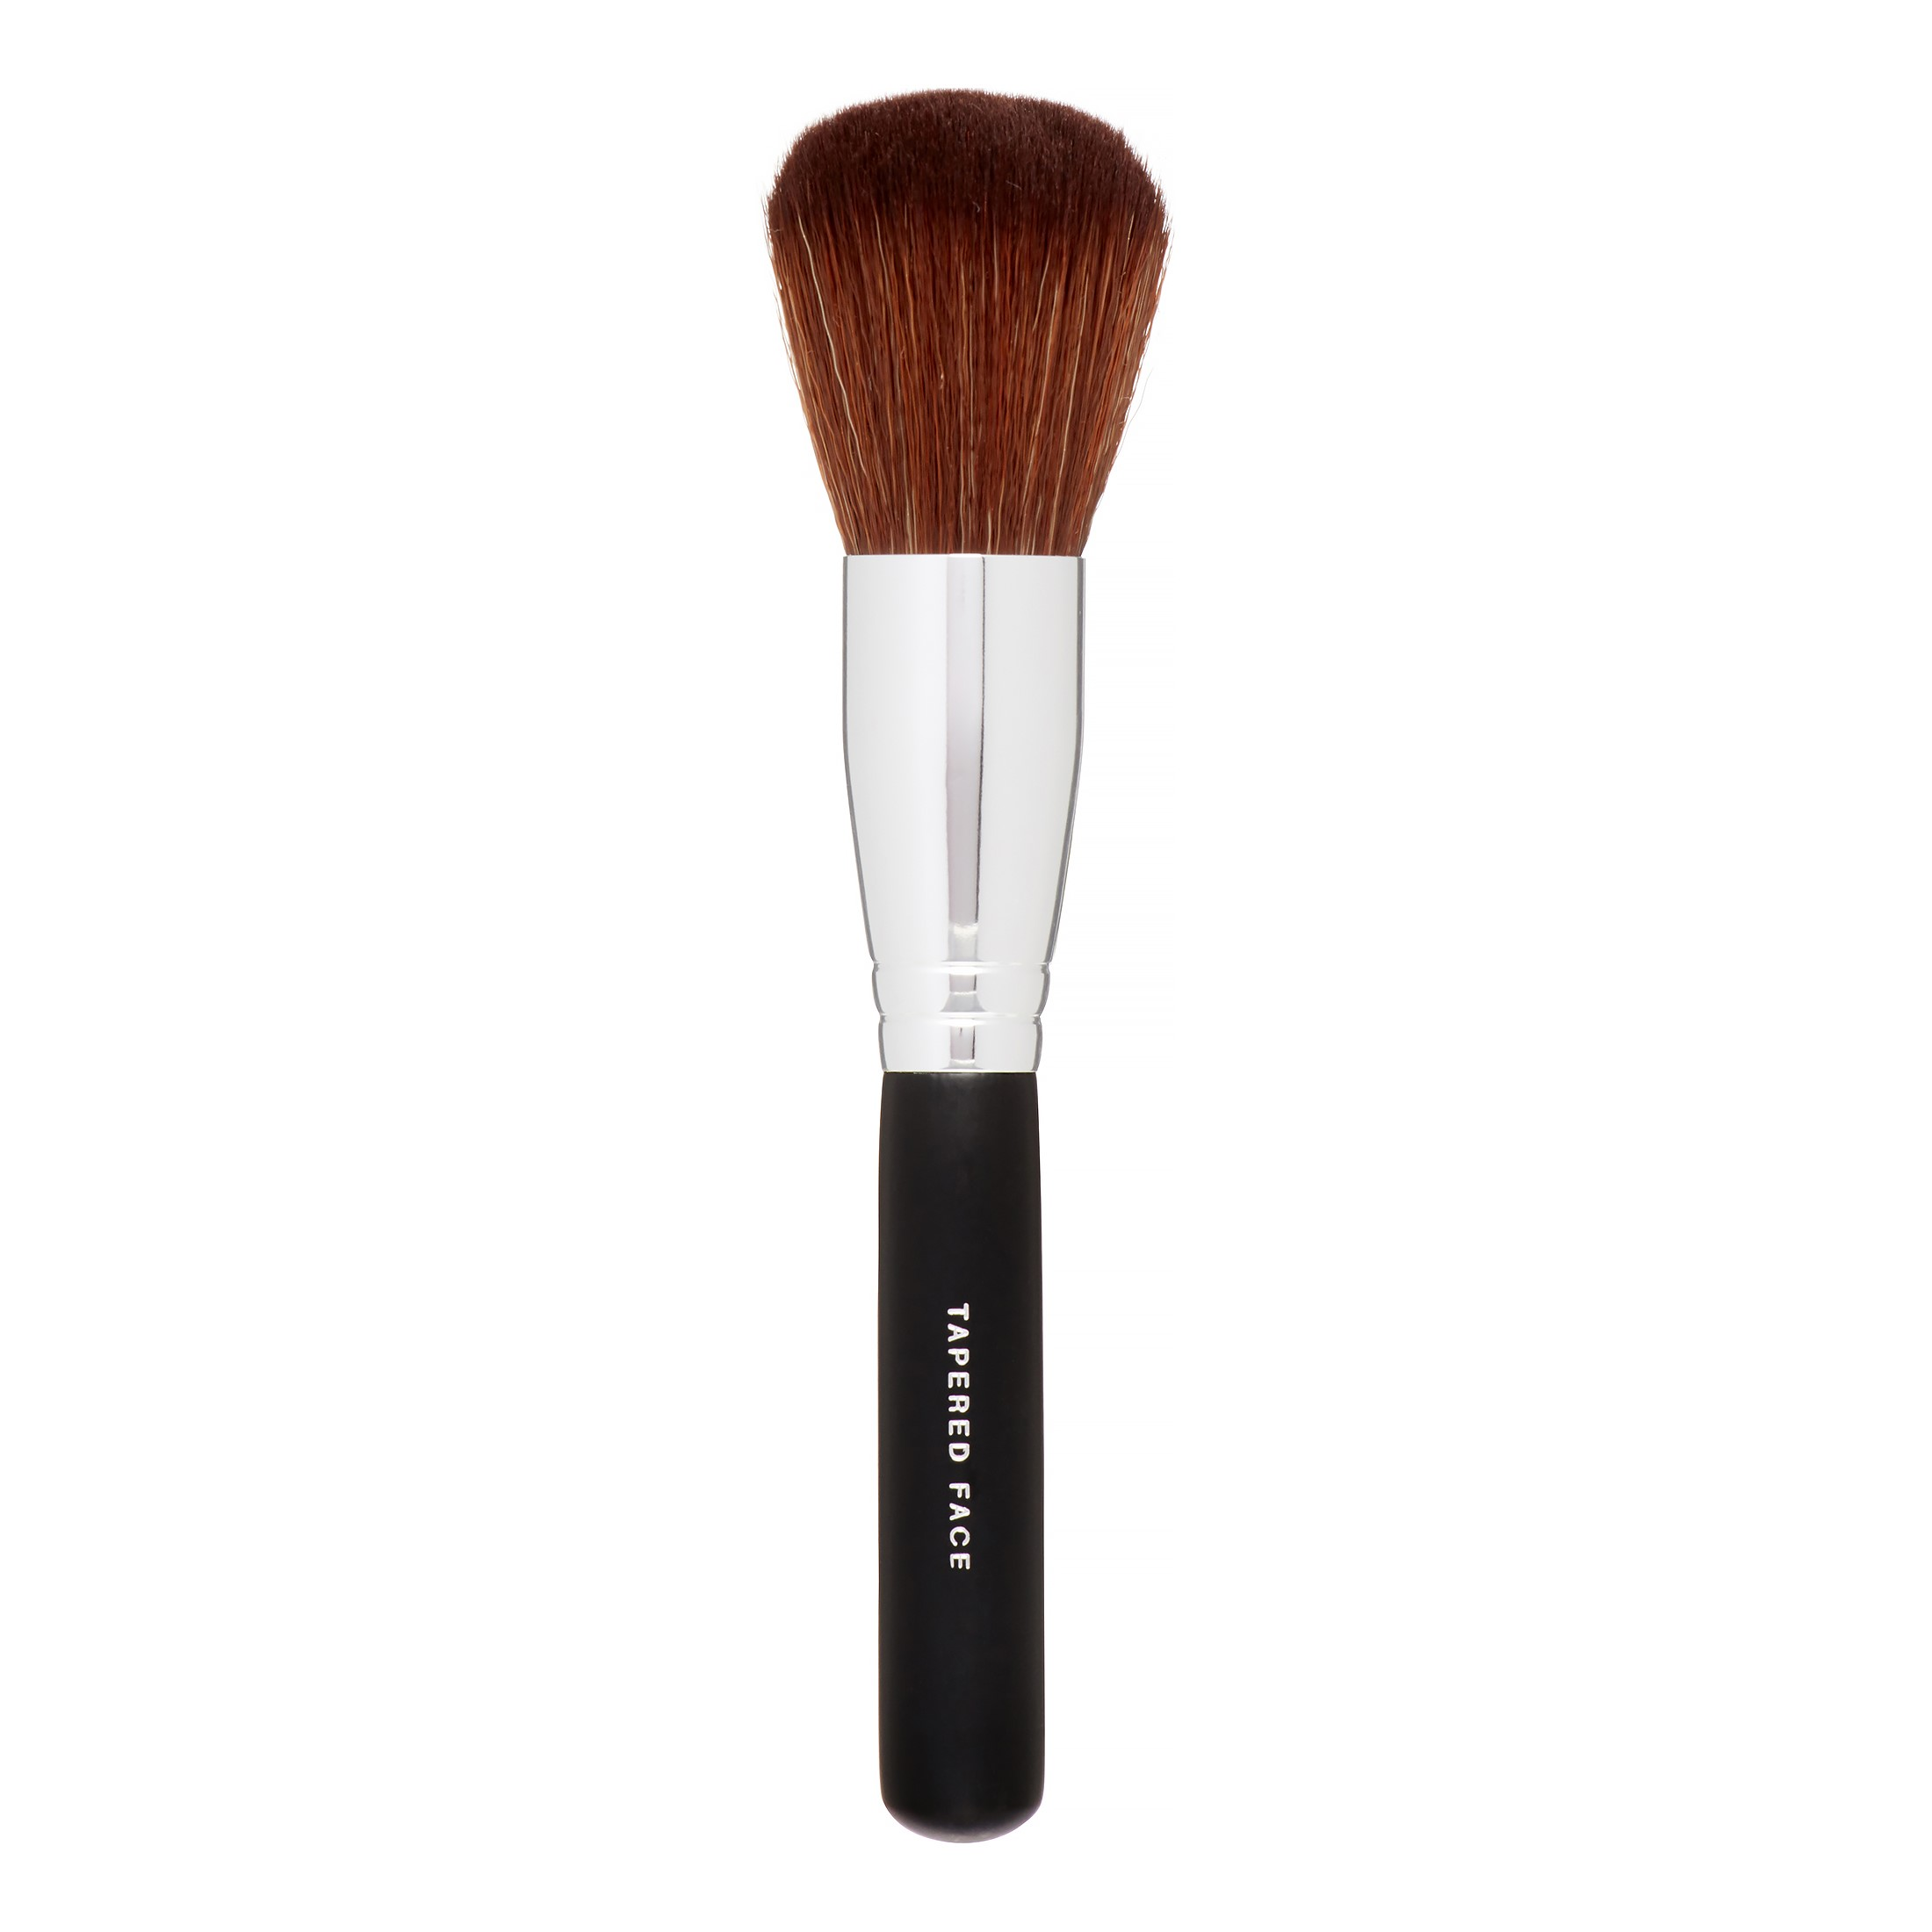 BareMinerals Tapered Face Makeup Brush